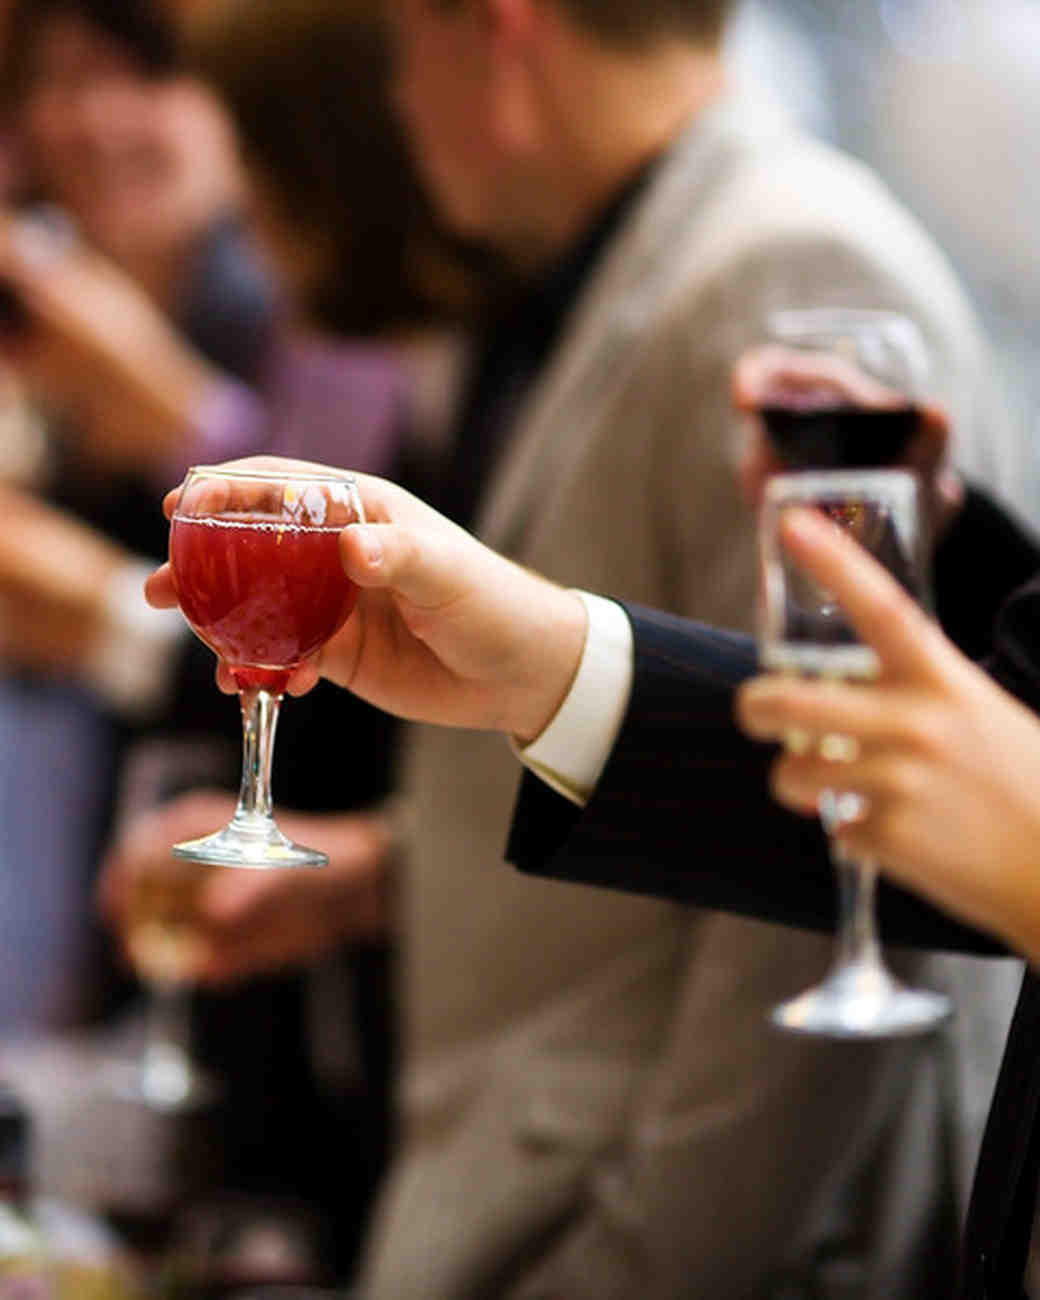 What the Best Man Needs to Know About Giving a Wedding Toast